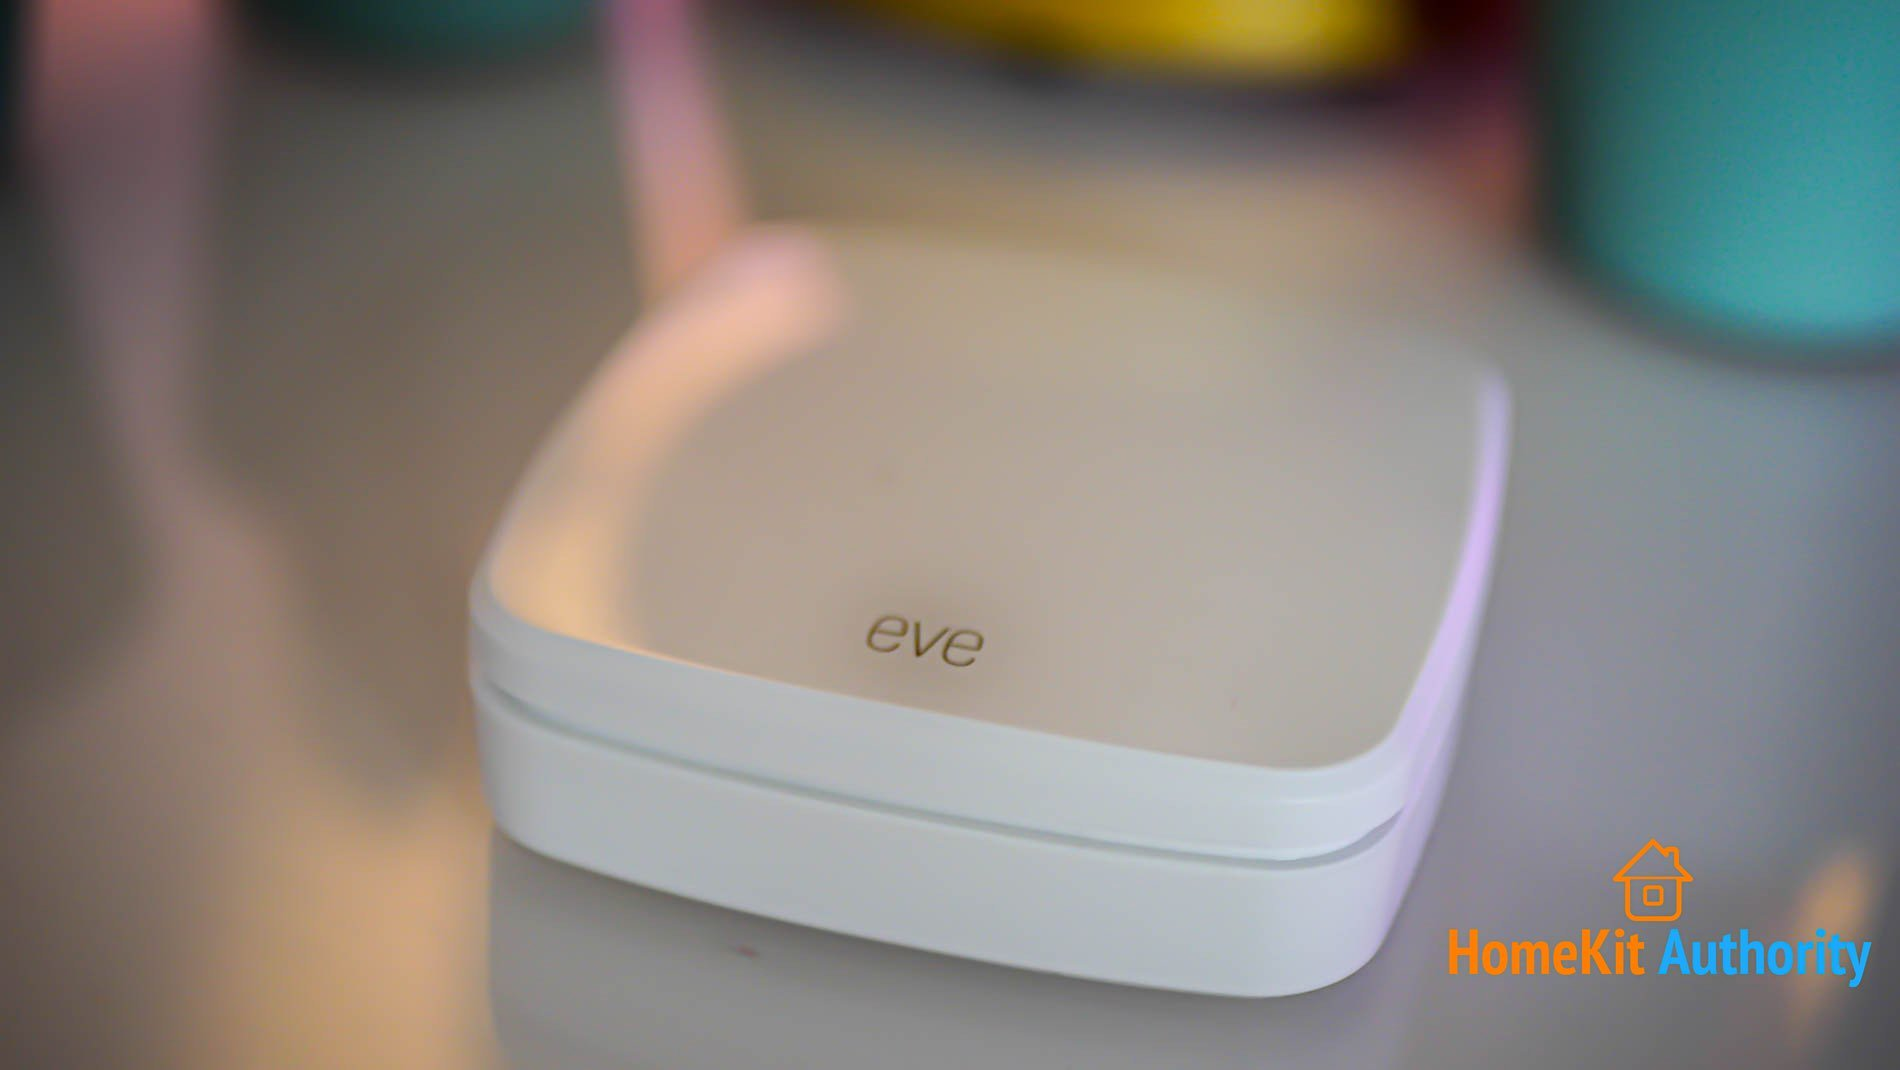 Eve Extend review